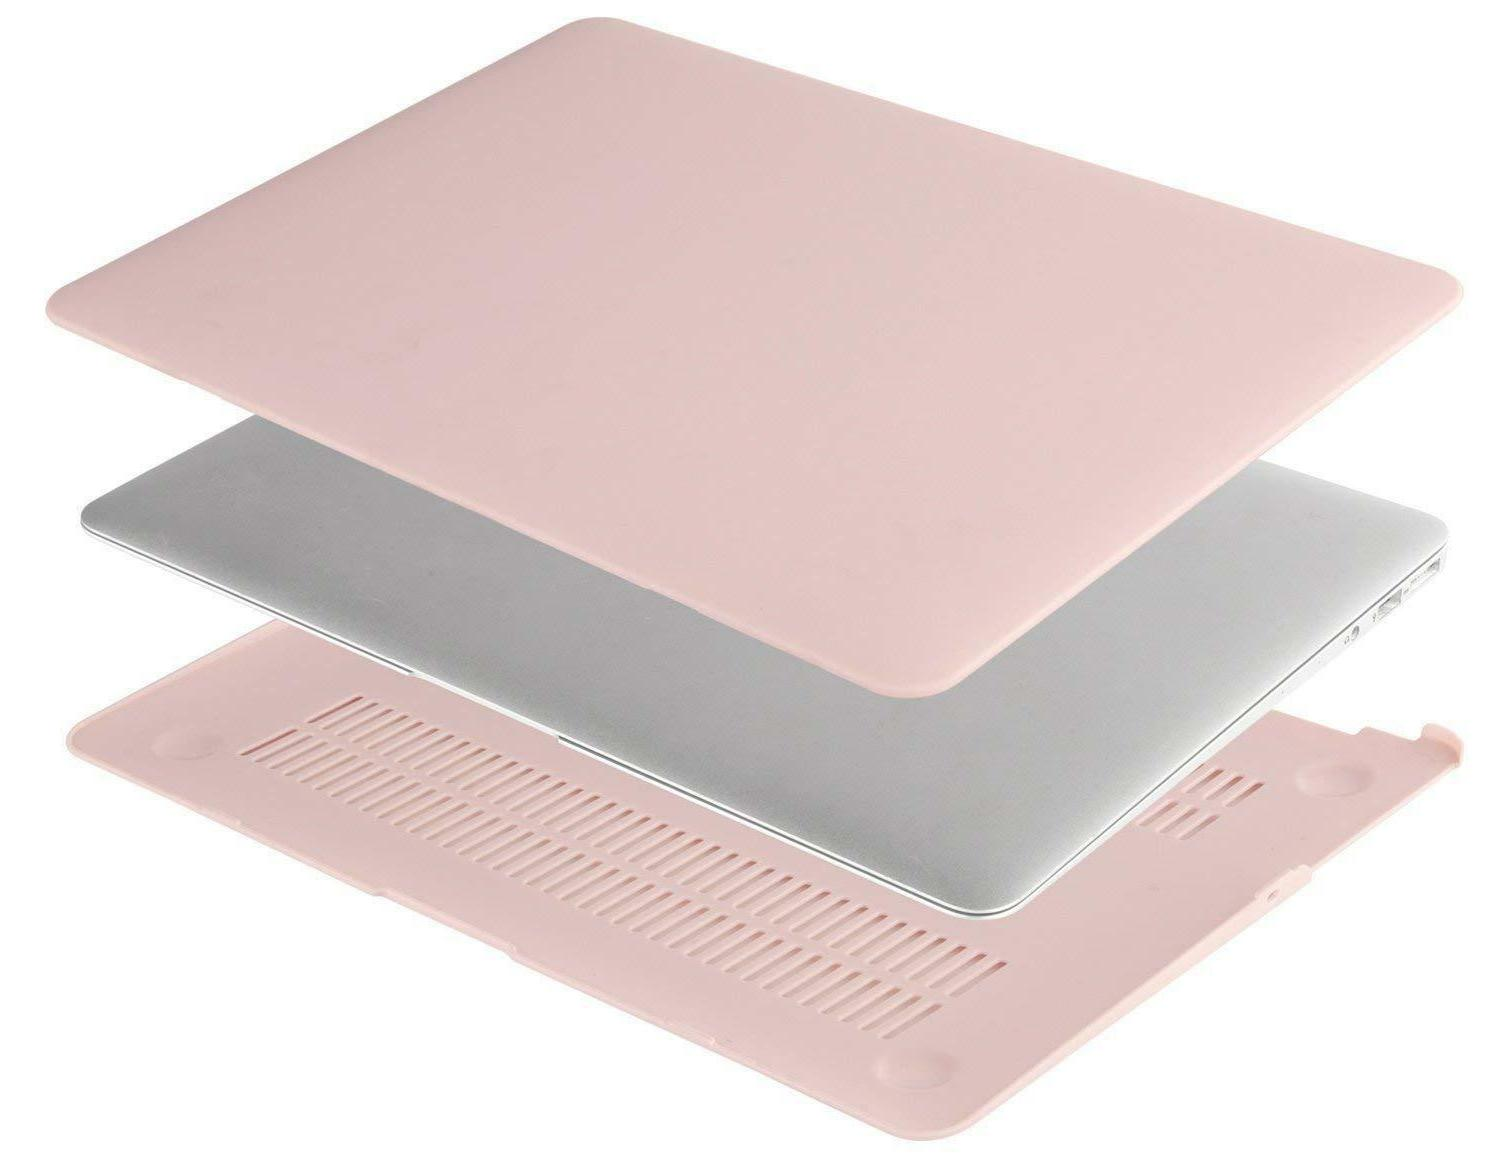 Mosiso 3 Pink Hard Cover for Macbook A1466/A1369 cover